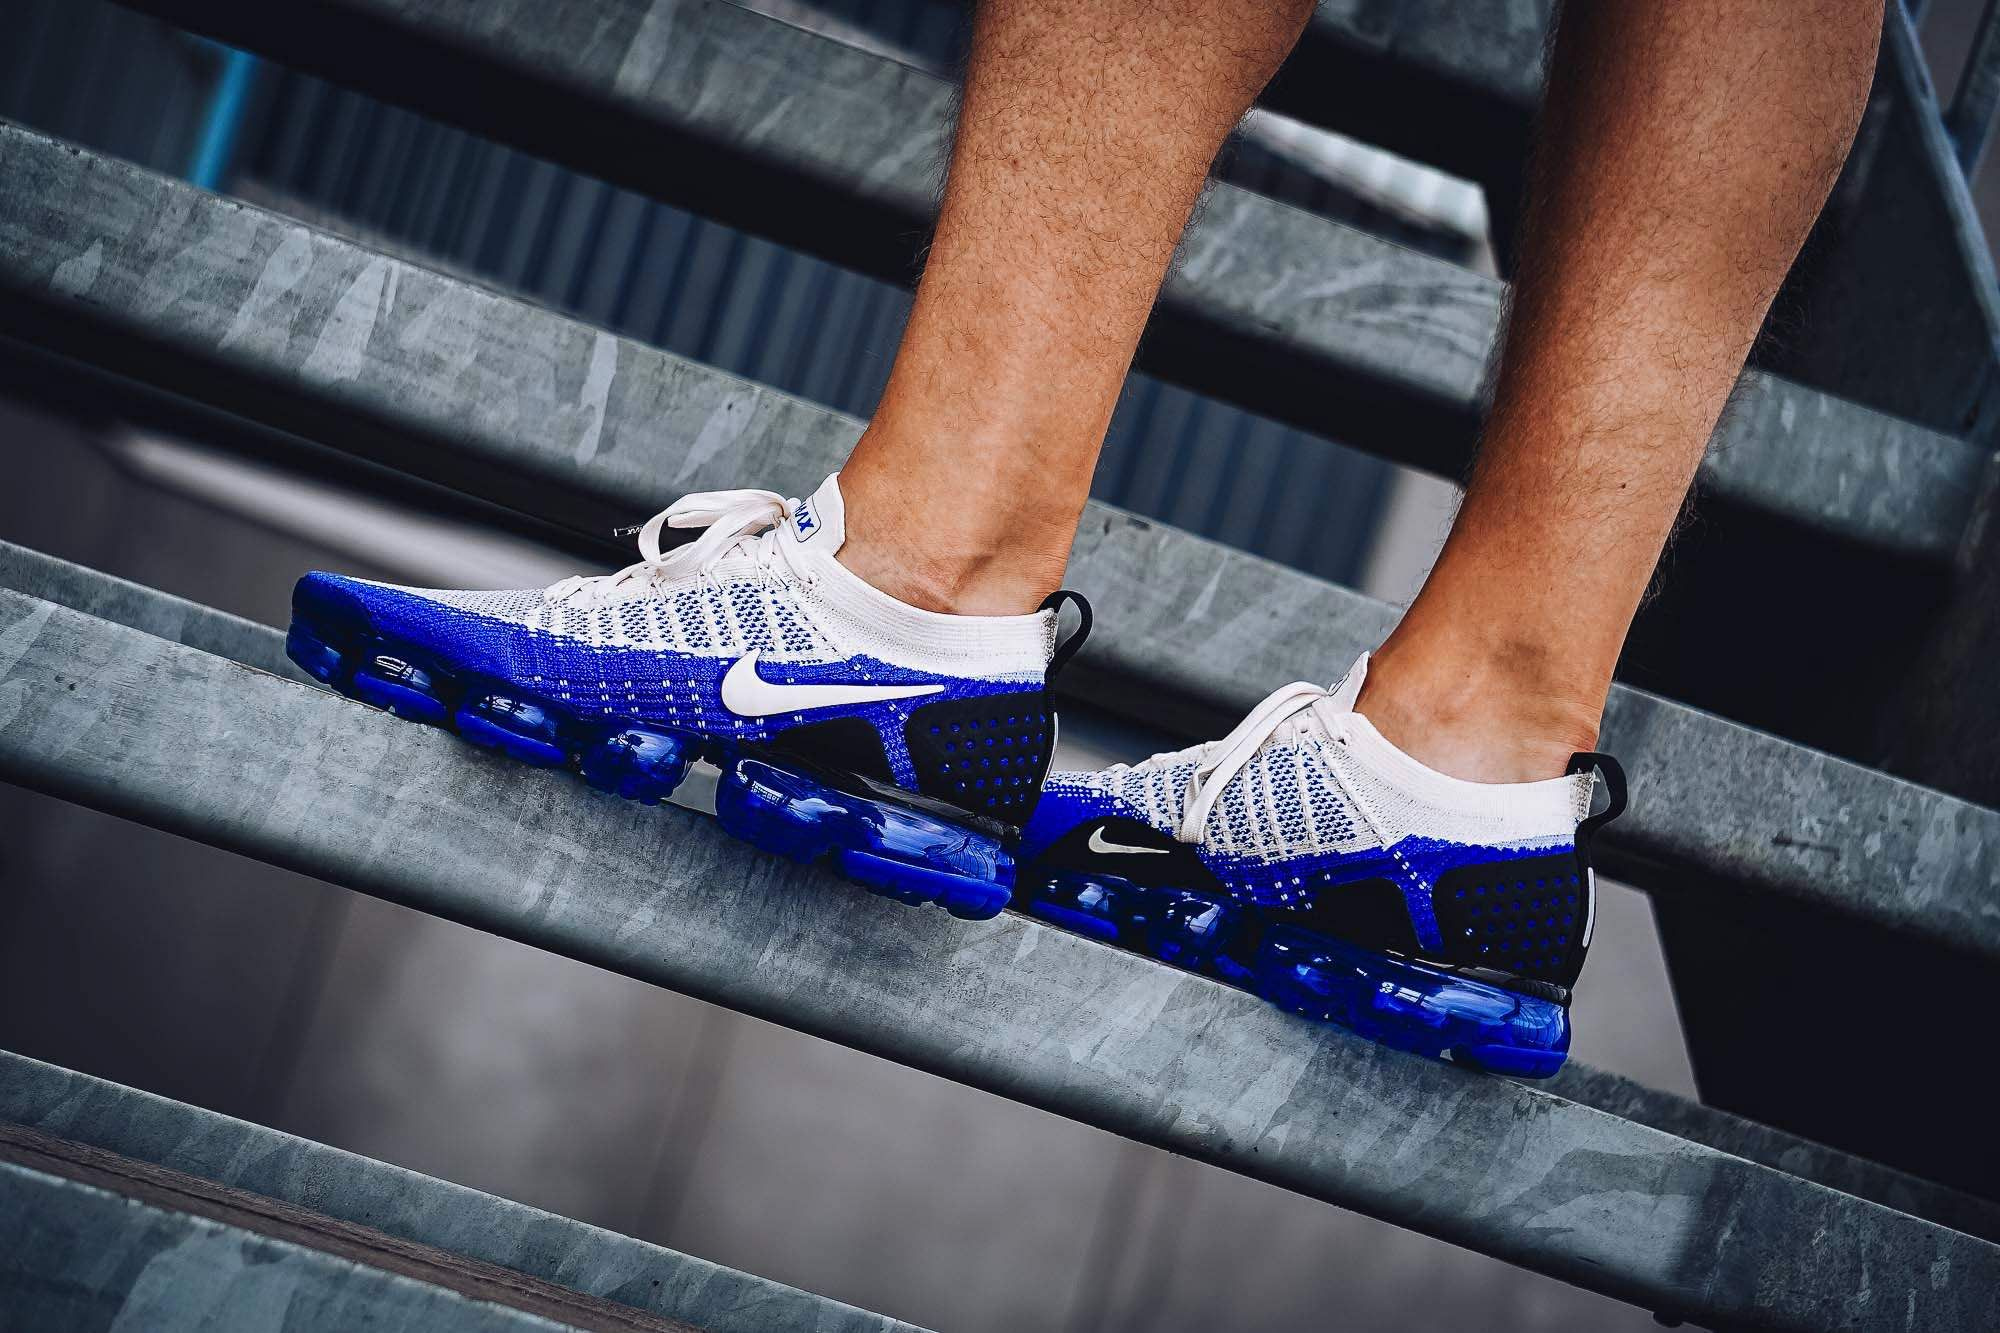 buy online fbf0b 79034 Where to buy Nike Air VaporMax 2.0 Racer Blue Shoes Online ...